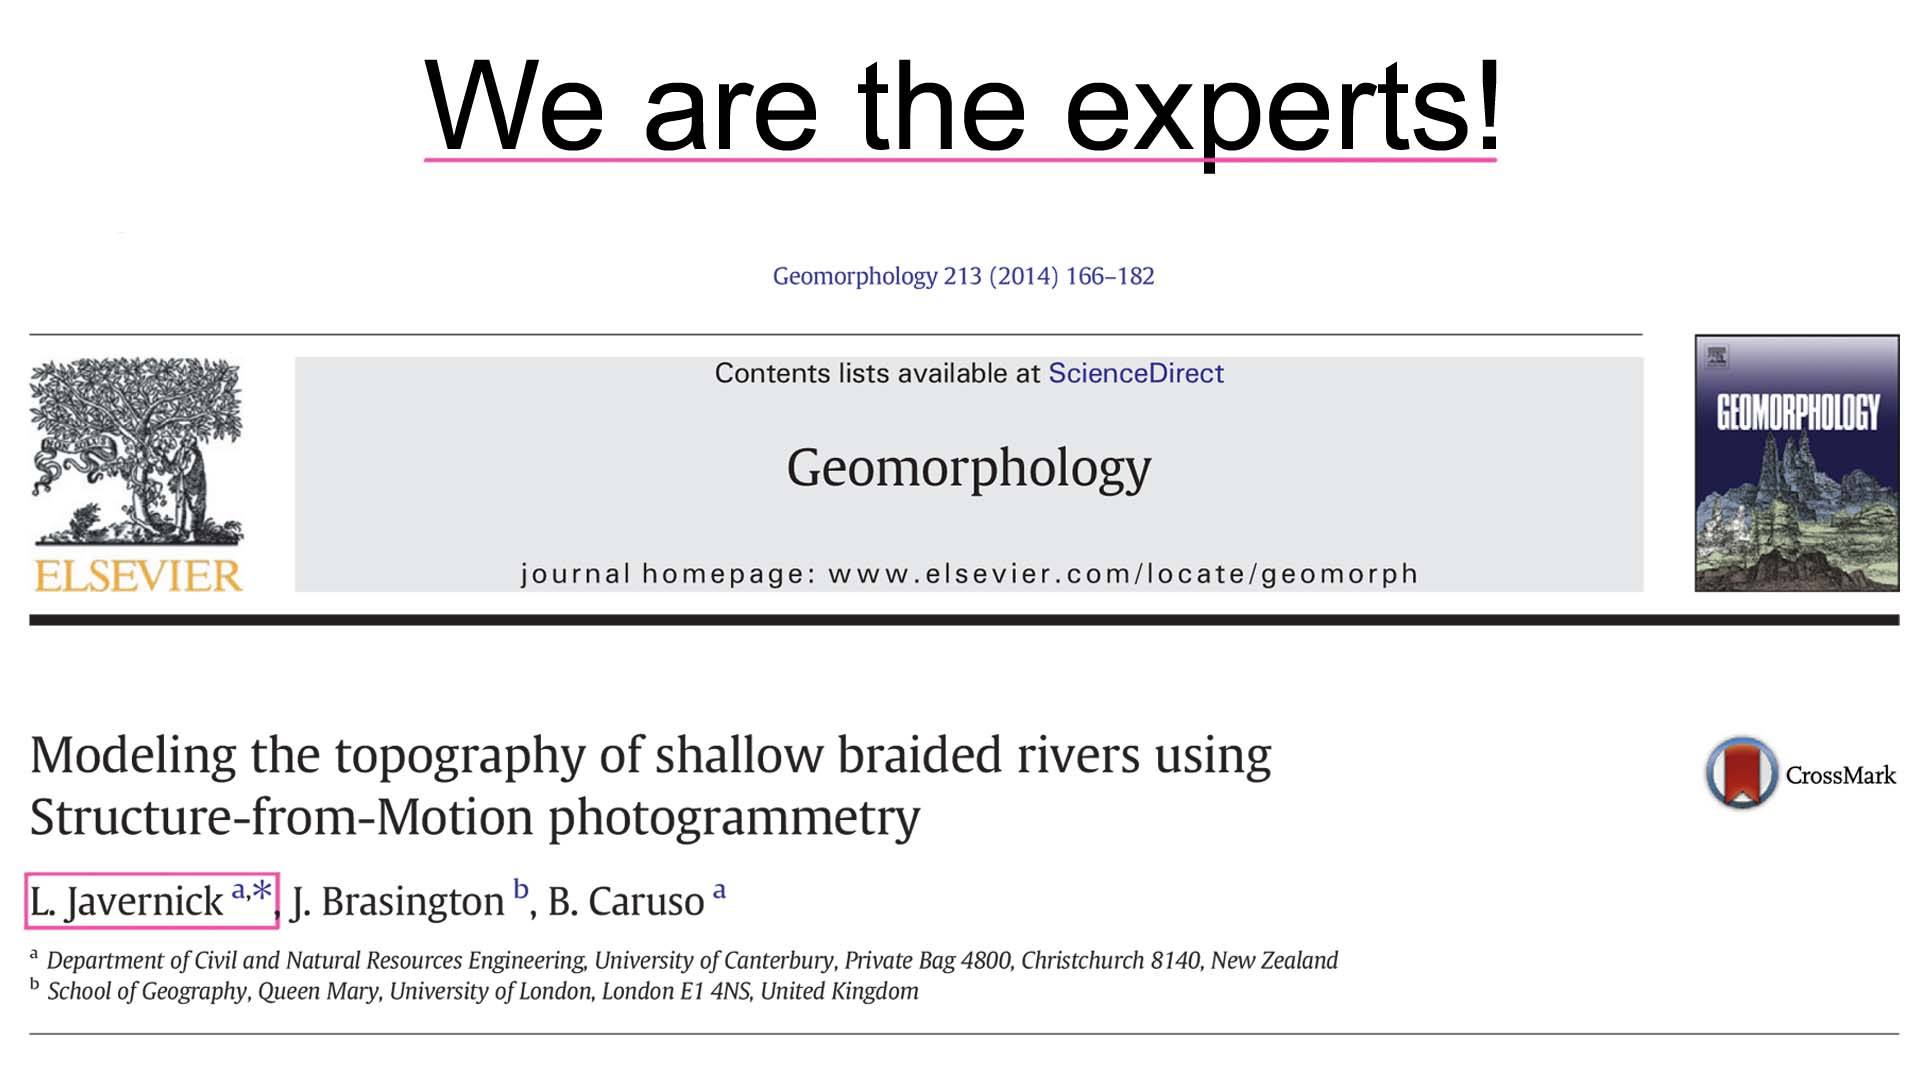 WeAreTheExpertsGeomorhology copy.jpg